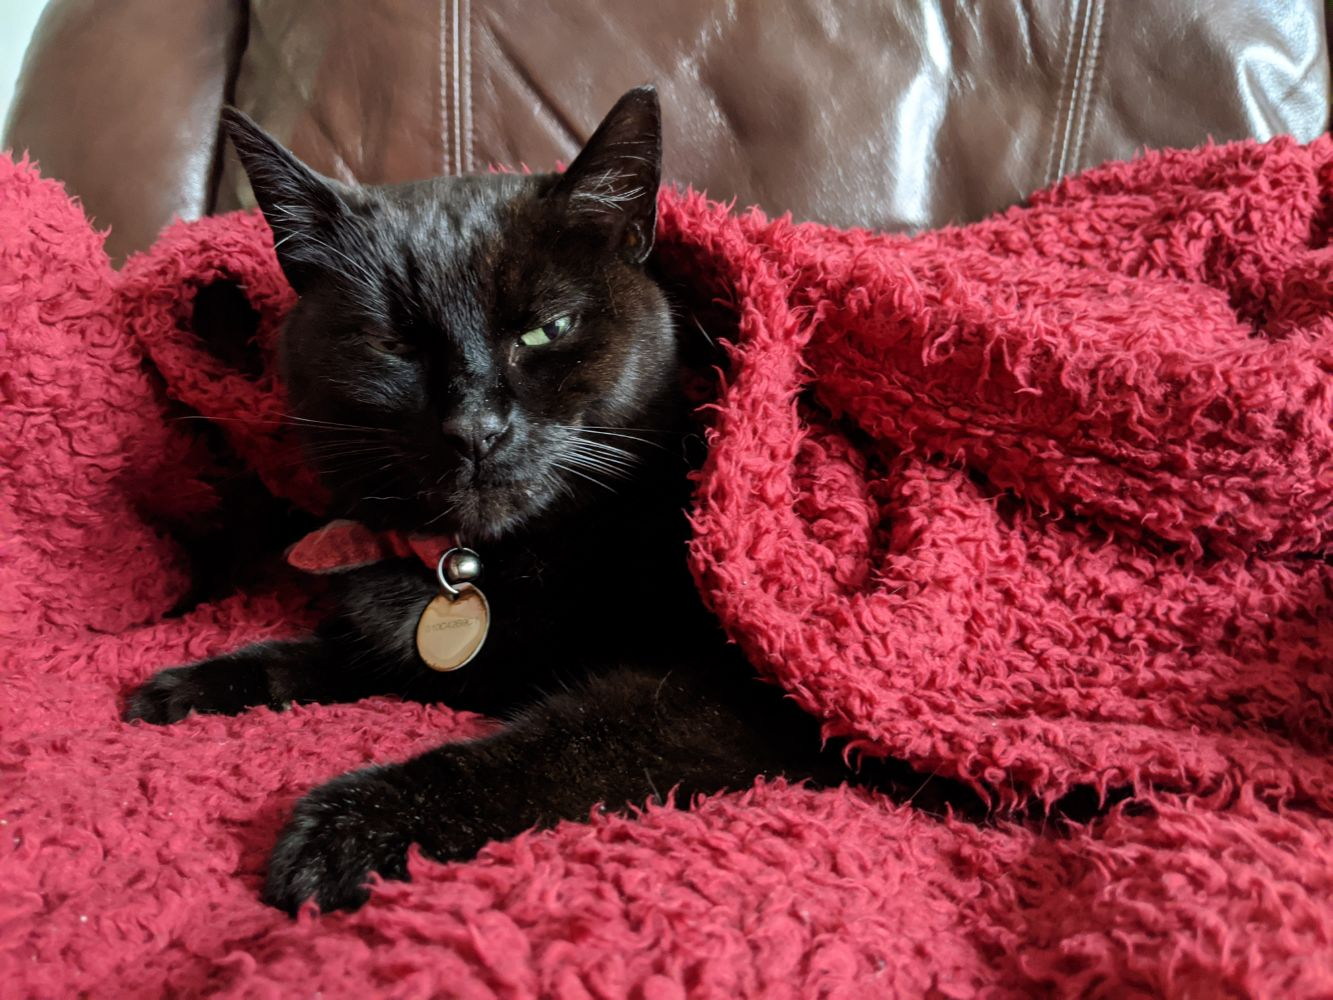 Black cat sitting up, wrapped up in a red blanket, and looking at the camera with appreciation